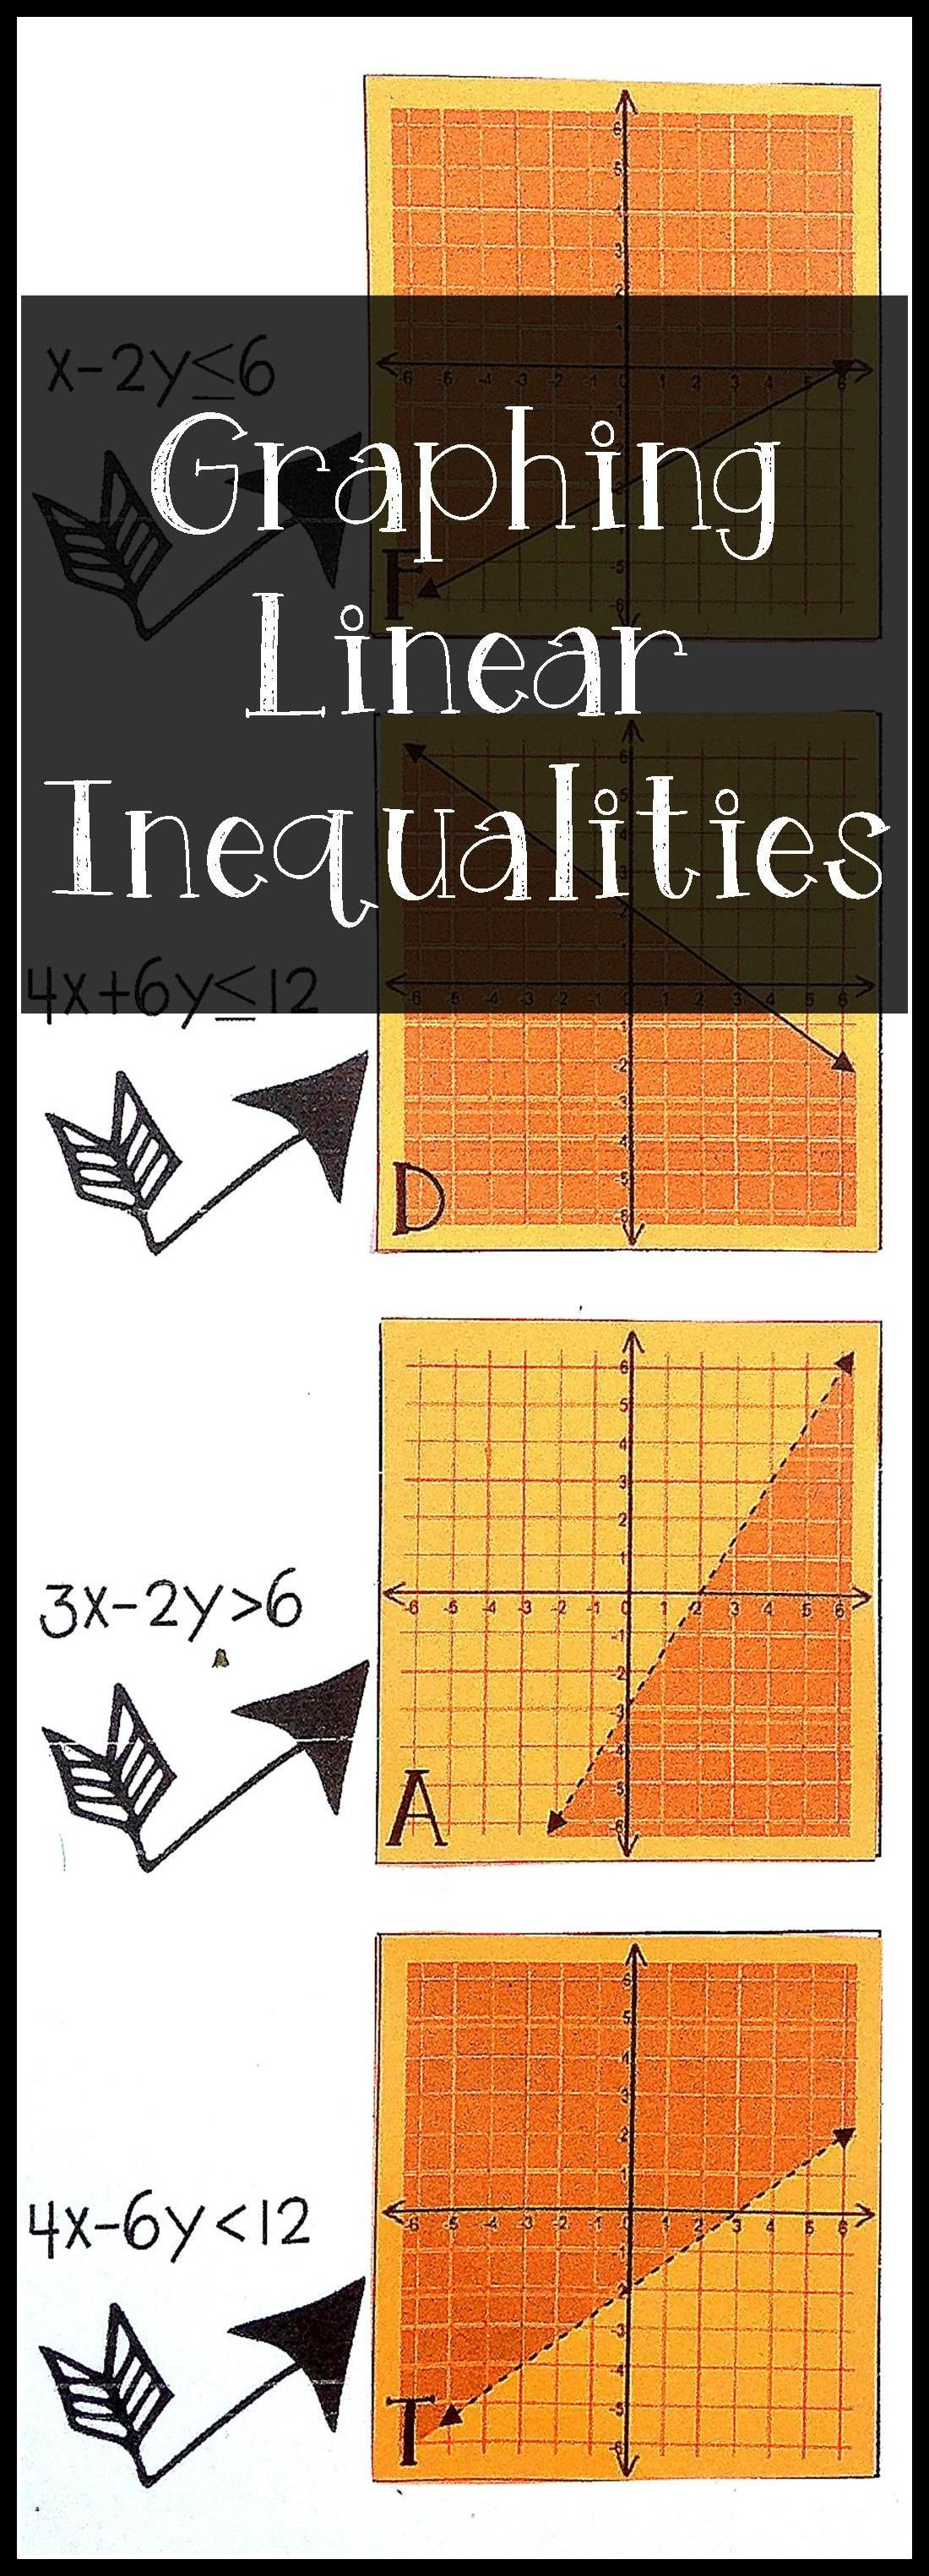 Graphing linear inequalities card match activity standard form graphing linear inequalities card match activity falaconquin